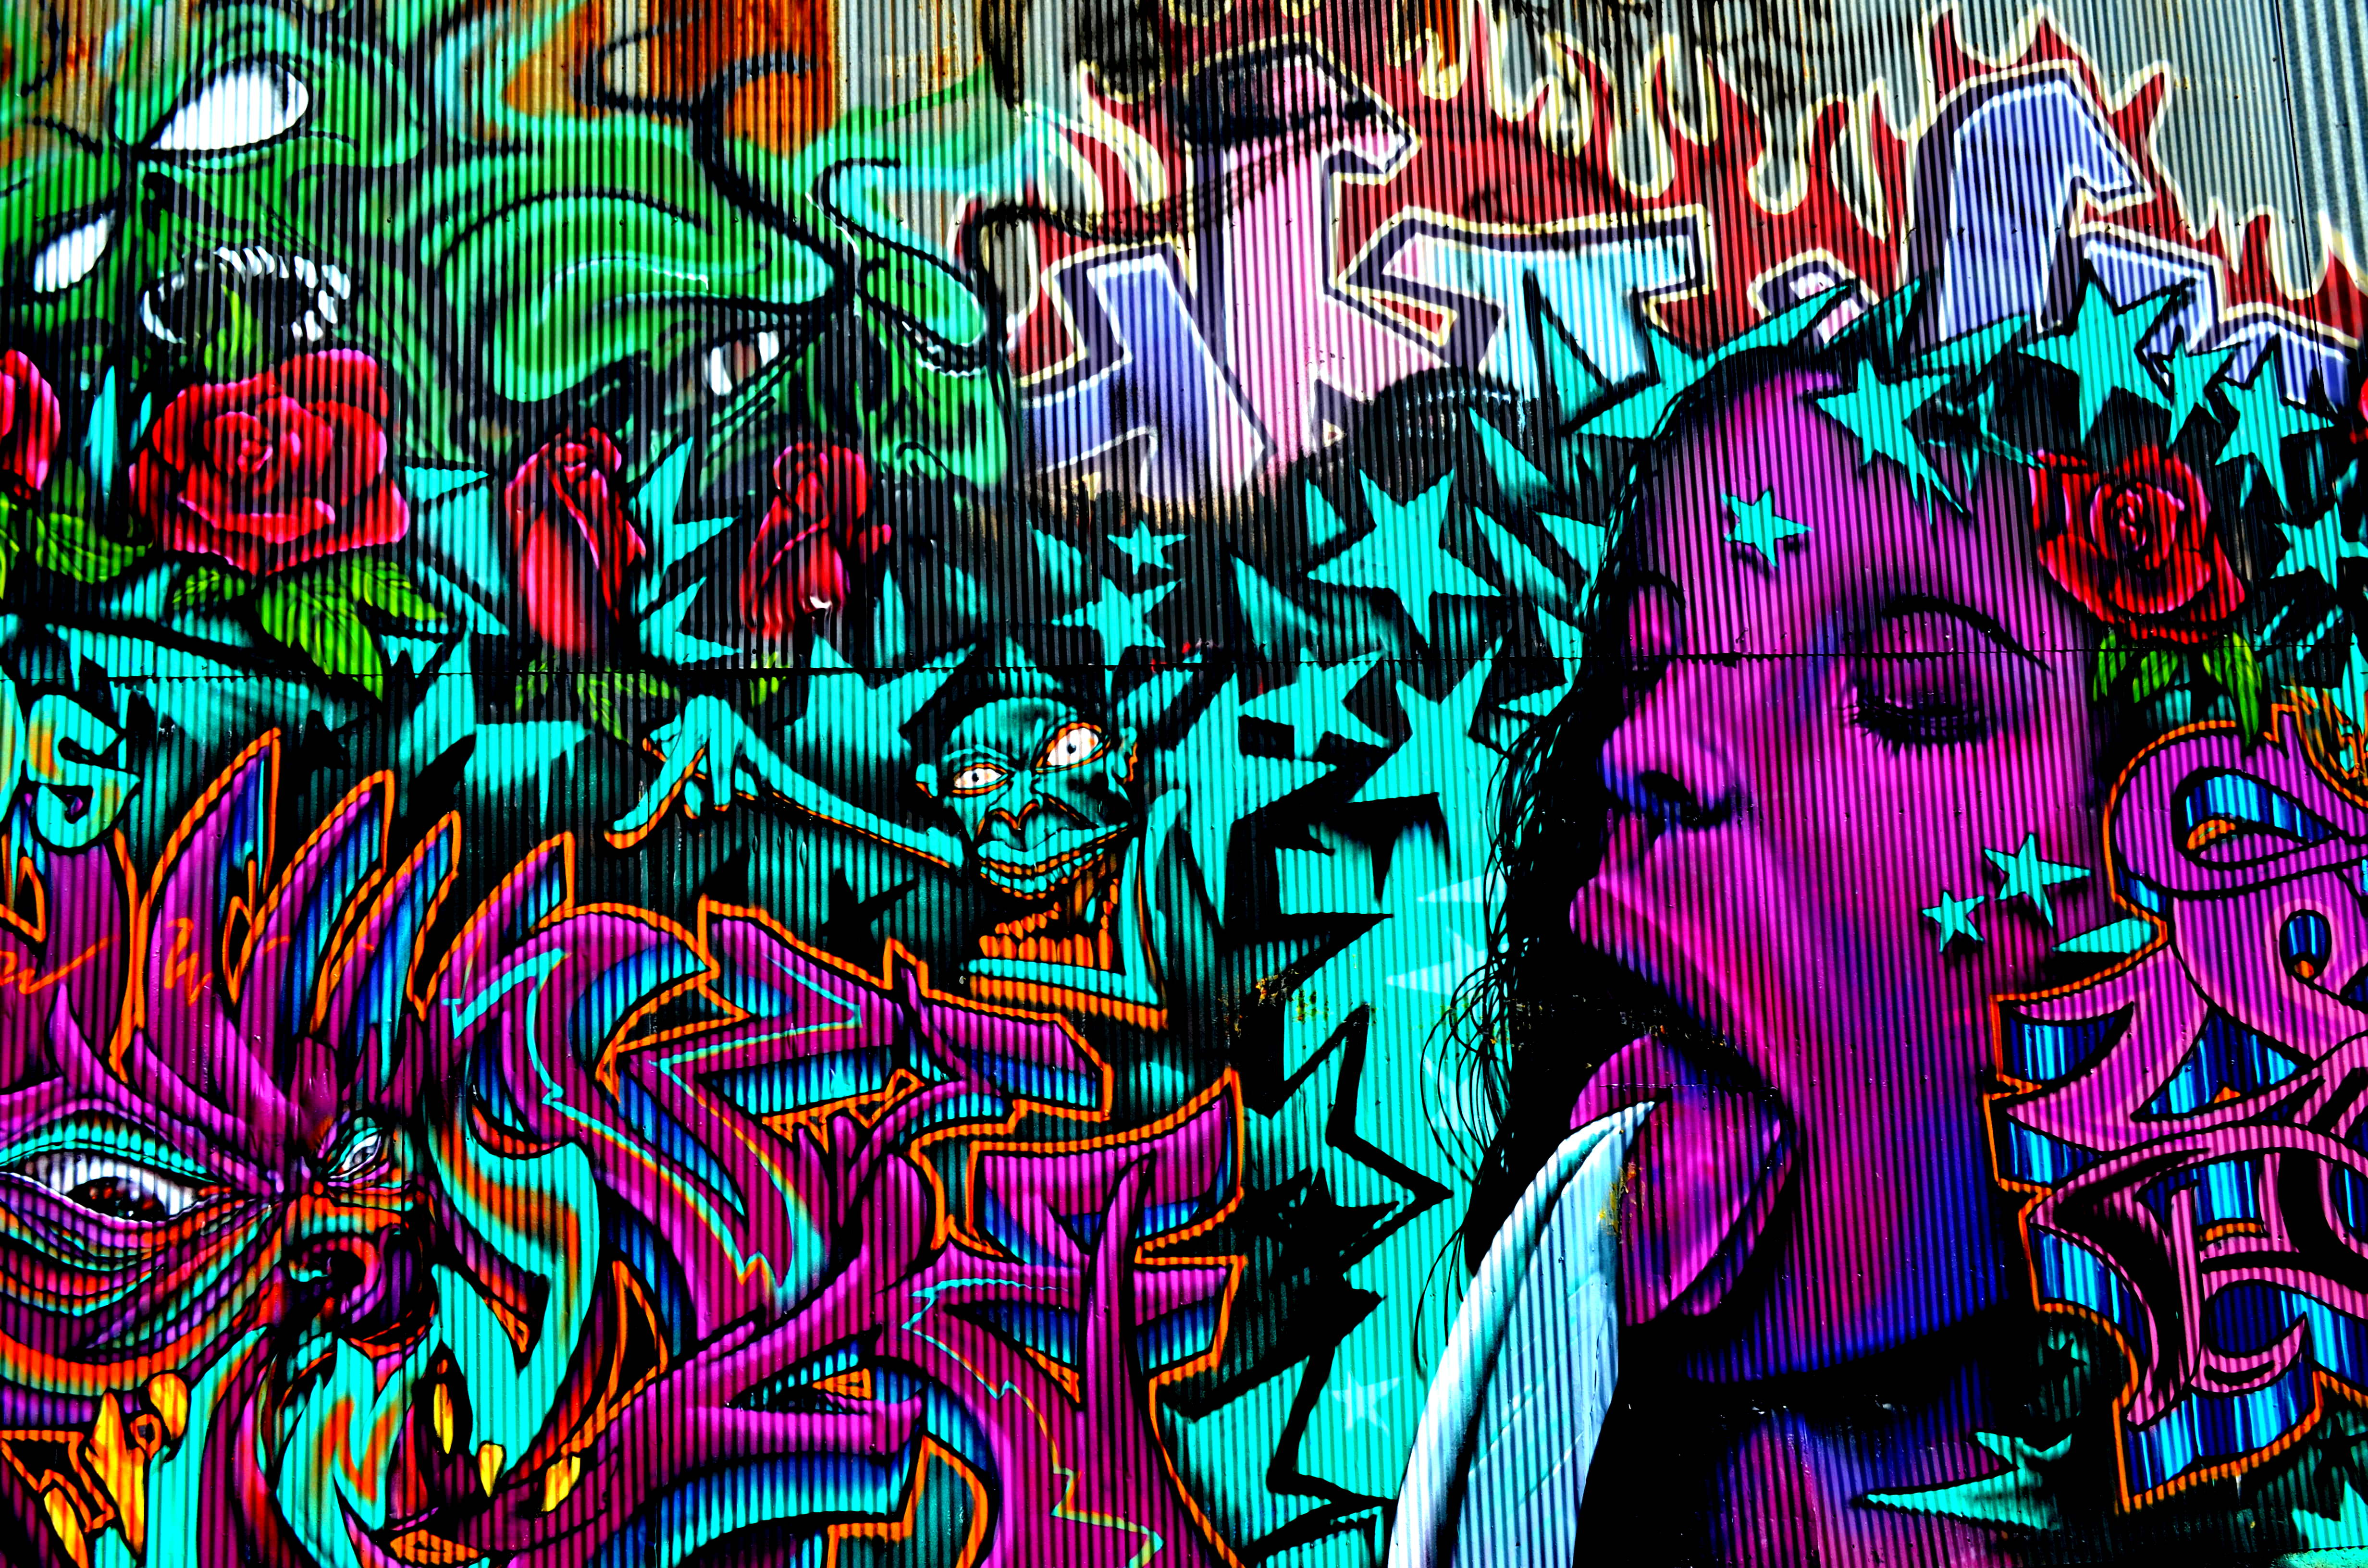 Graffiti Widescreen Wallpaper 4928x3264px